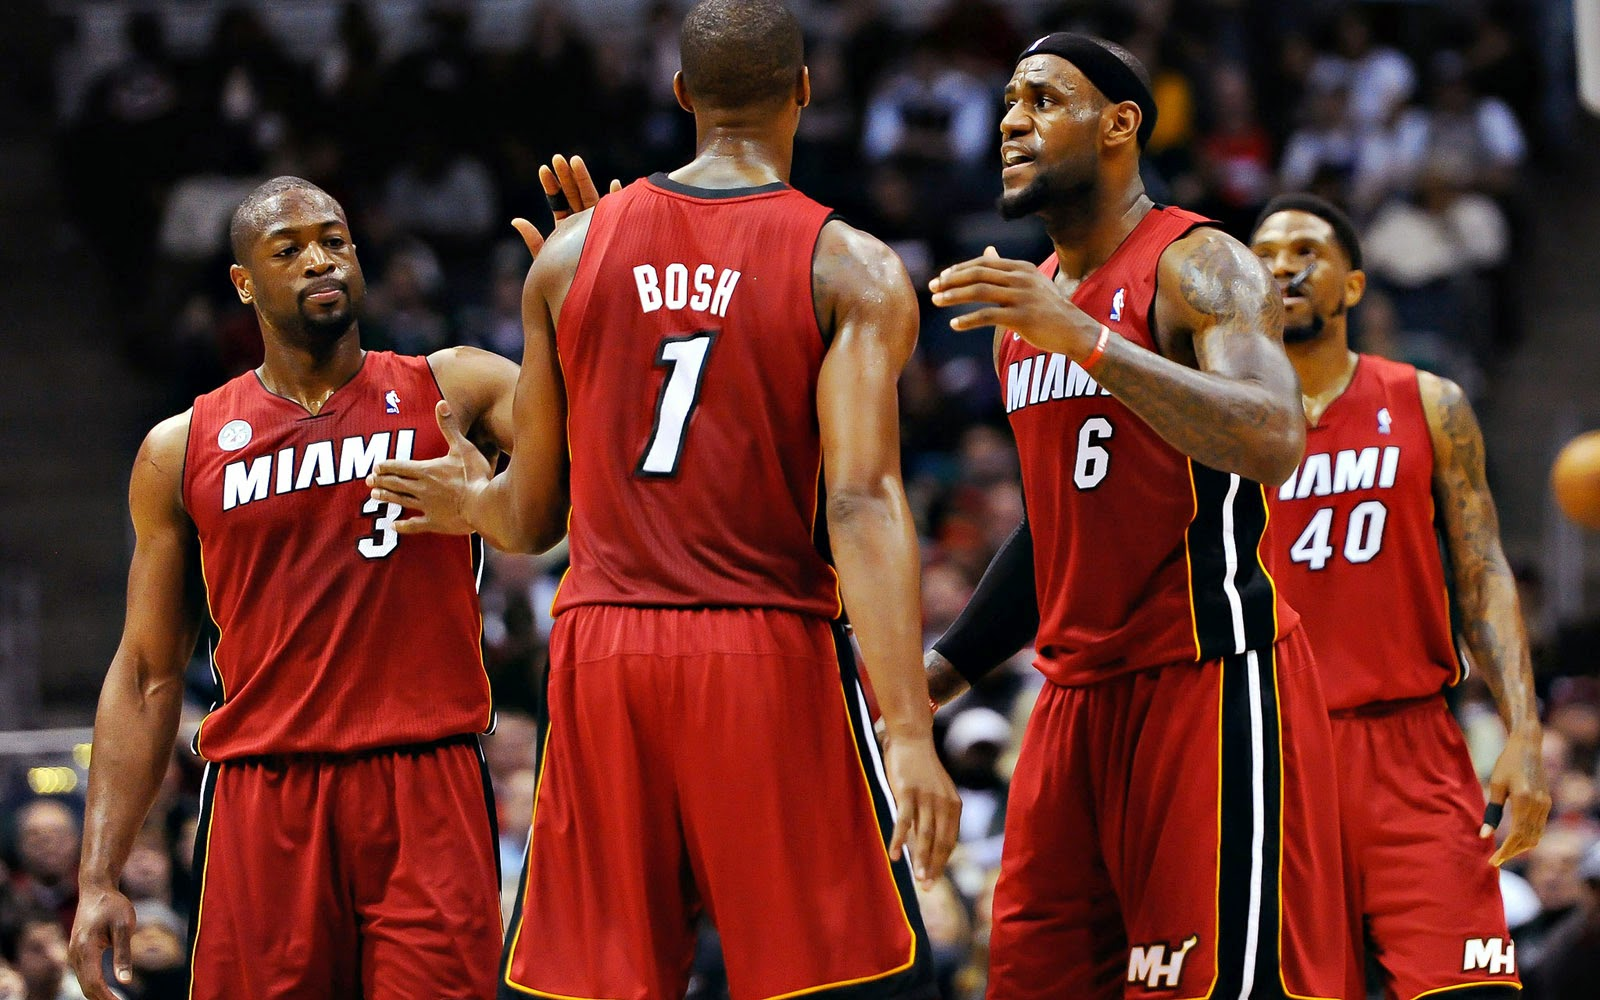 Miami Heat en vivo gratis online ver live partido NBA en directo Watch NBA free in streaming Lebron James, Bosh